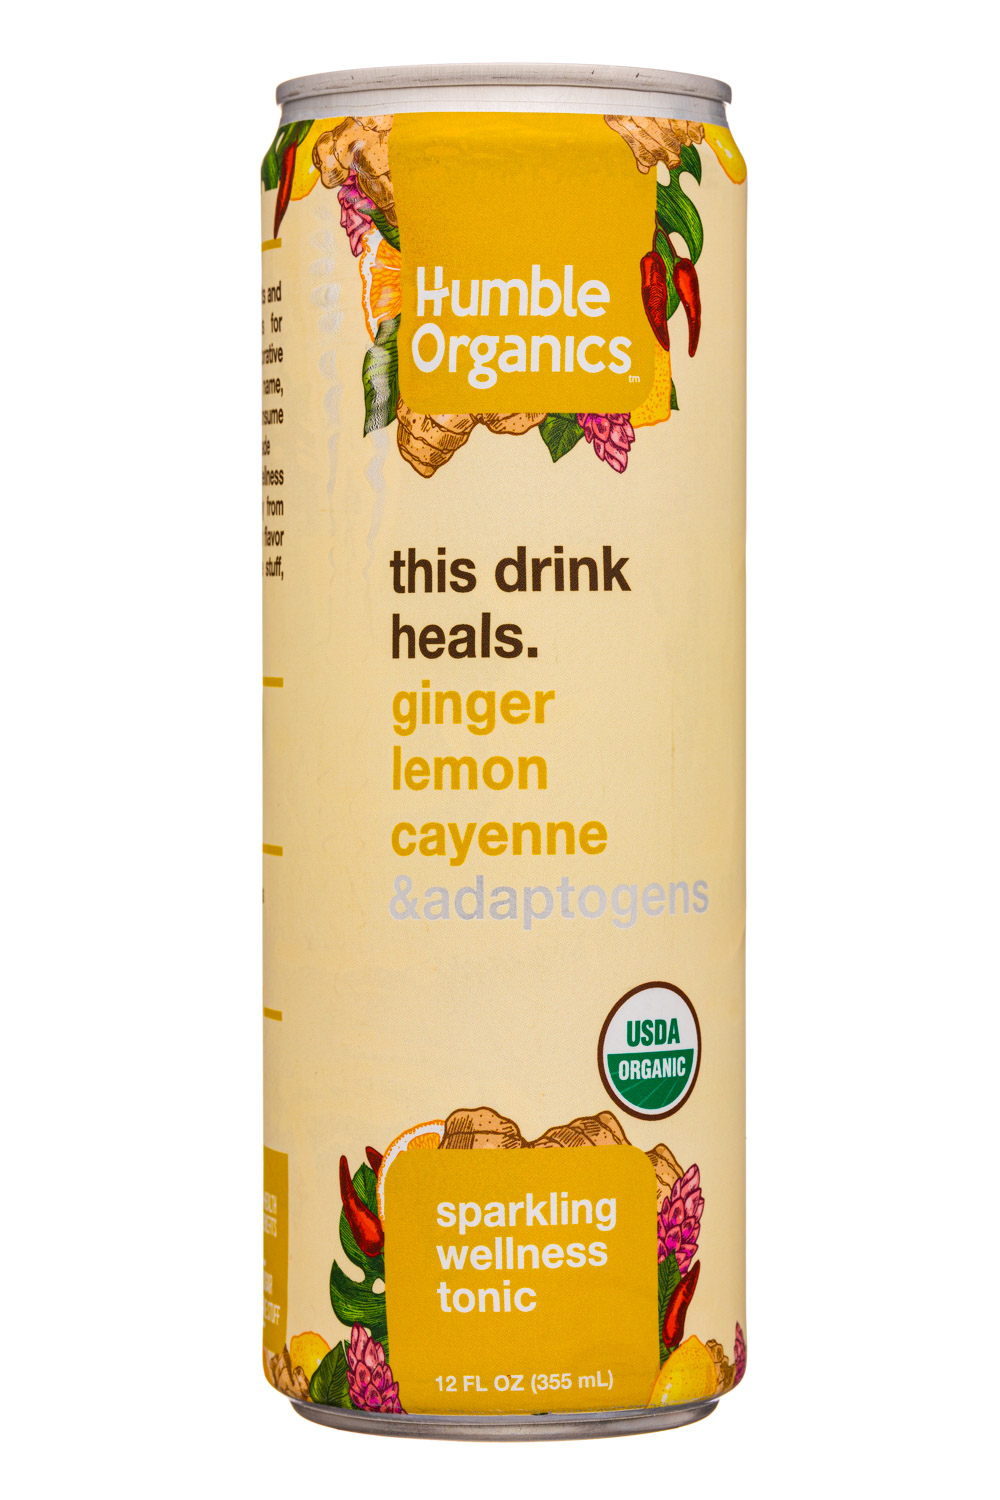 Ginger Lemon Cayenne & Adaptogens